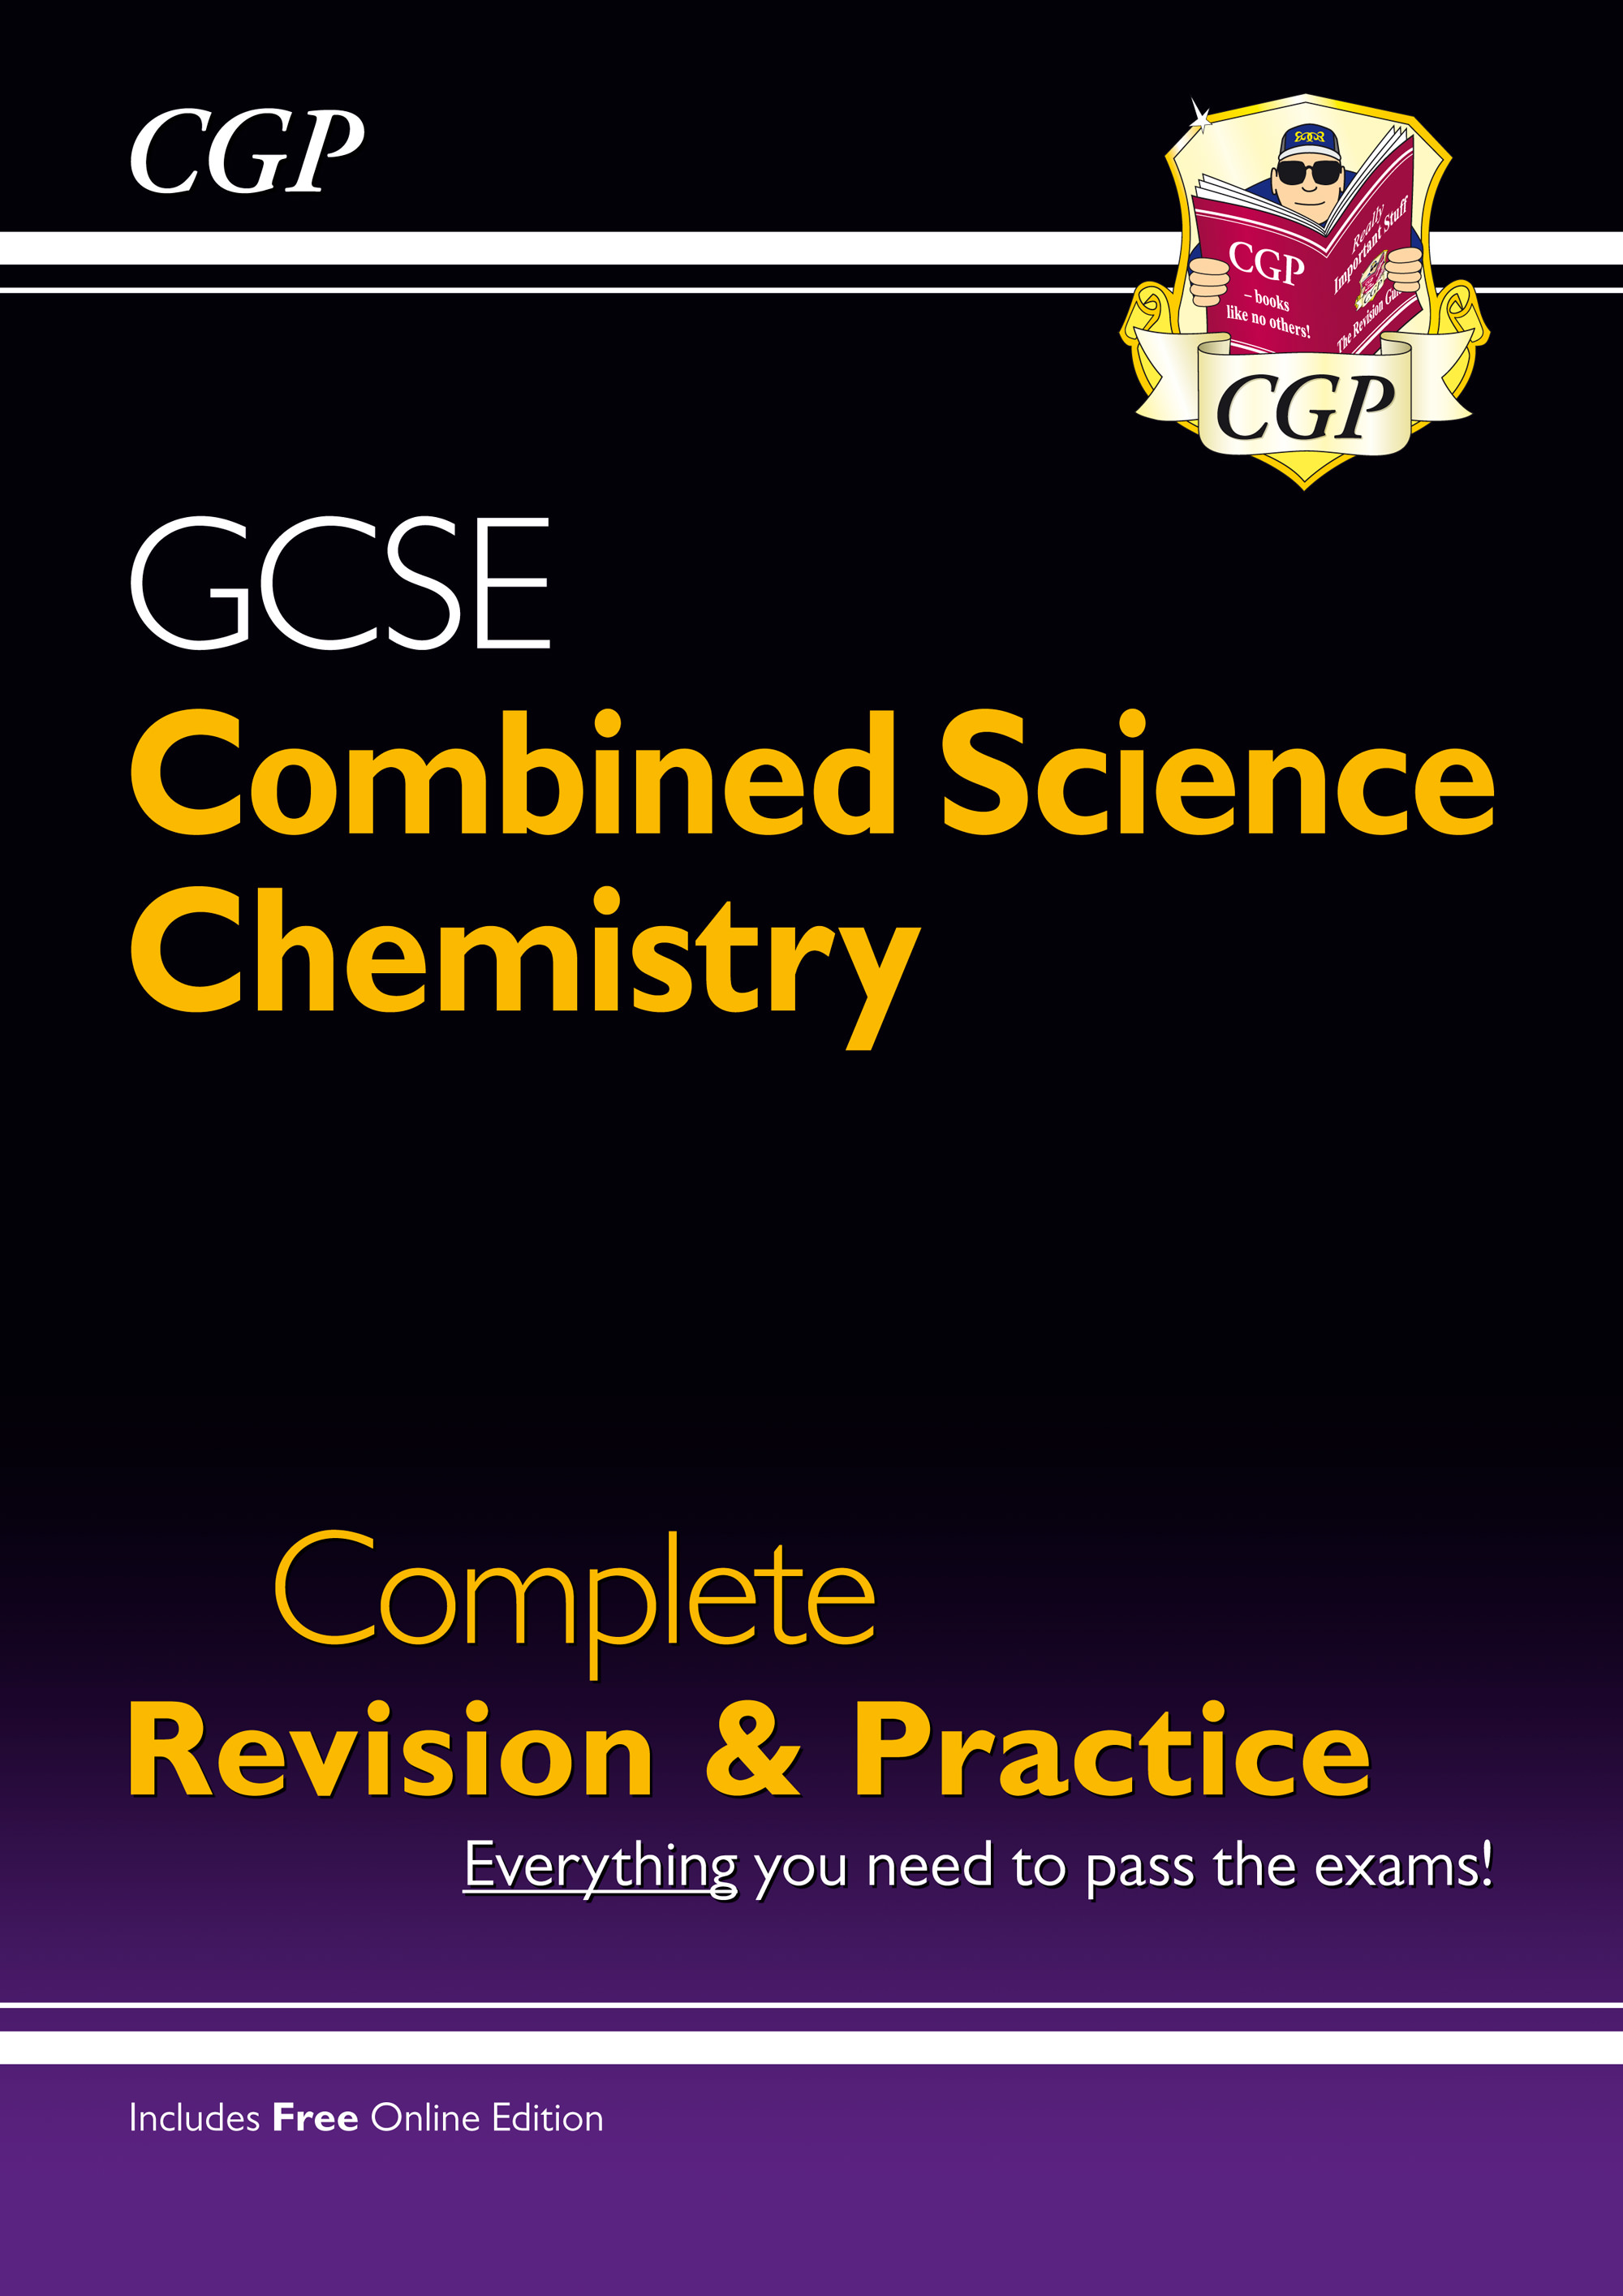 SCCS41 - Grade 9-1 GCSE Combined Science: Chemistry Complete Revision & Practice with Online Edition